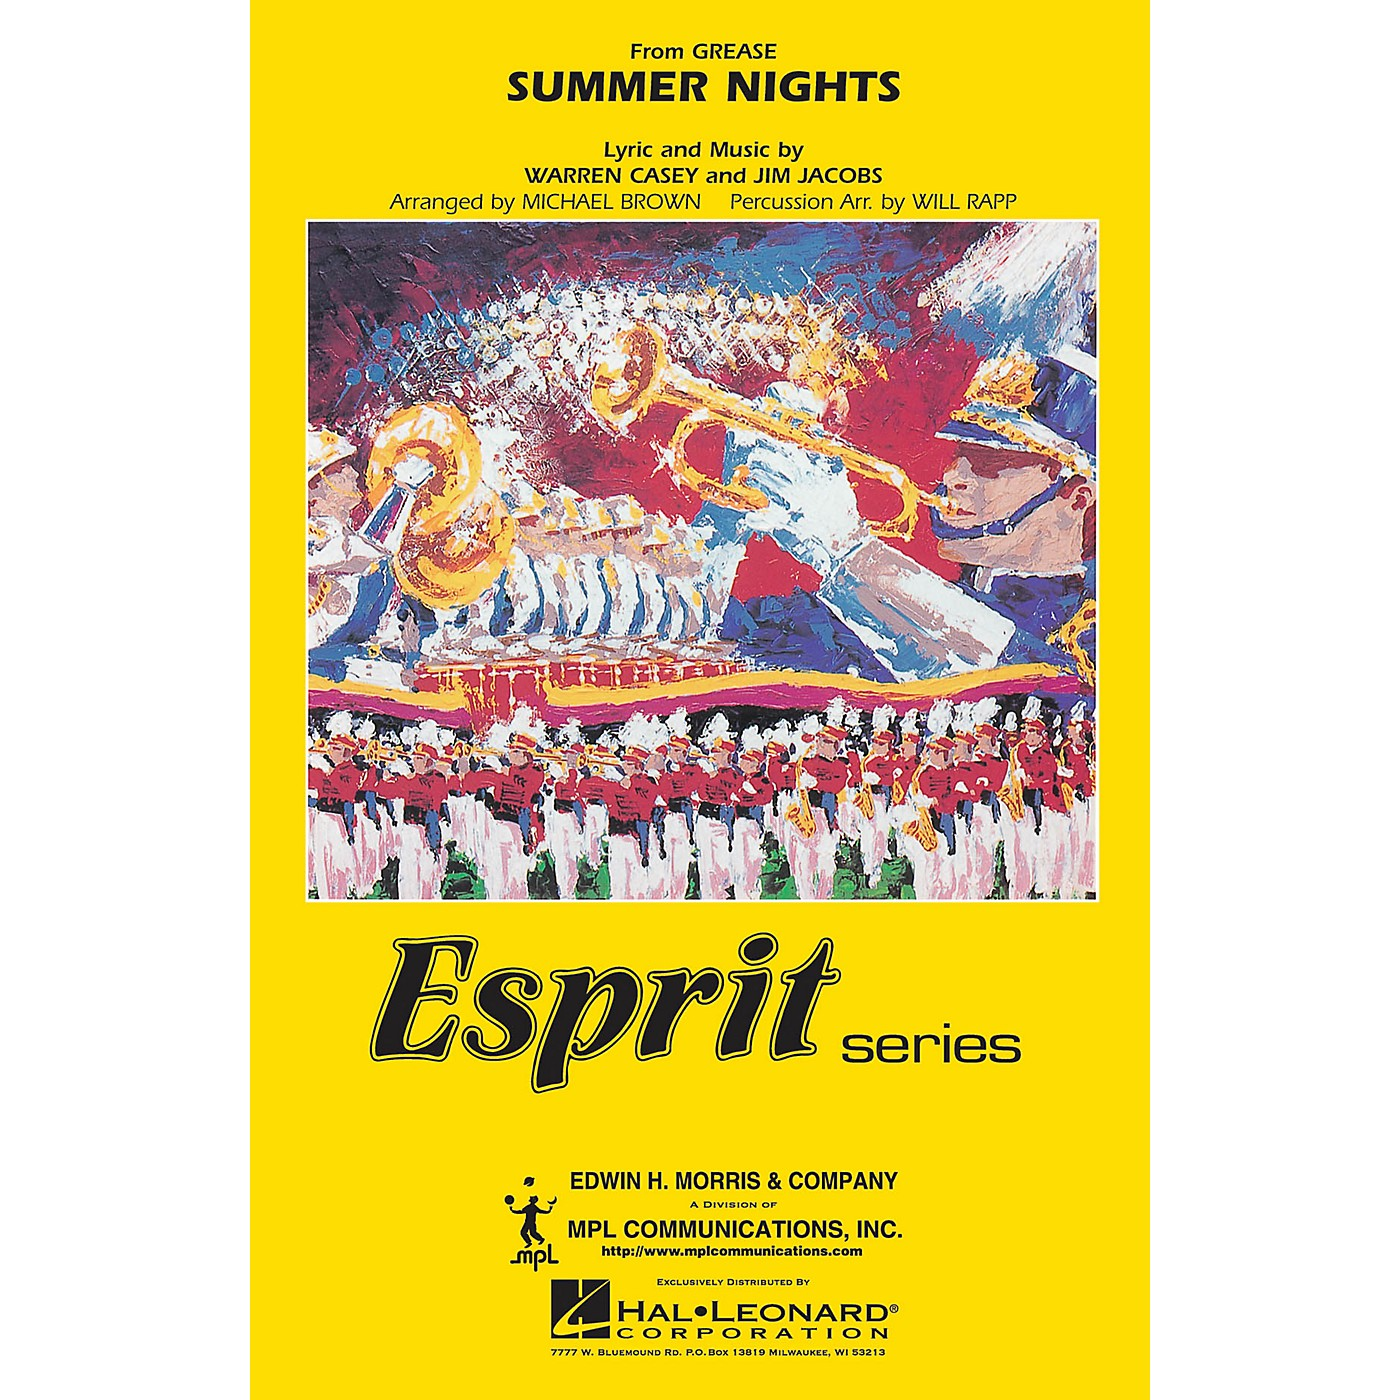 Hal Leonard Summer Nights (from GREASE) Marching Band Level 3 Arranged by Will Rapp thumbnail